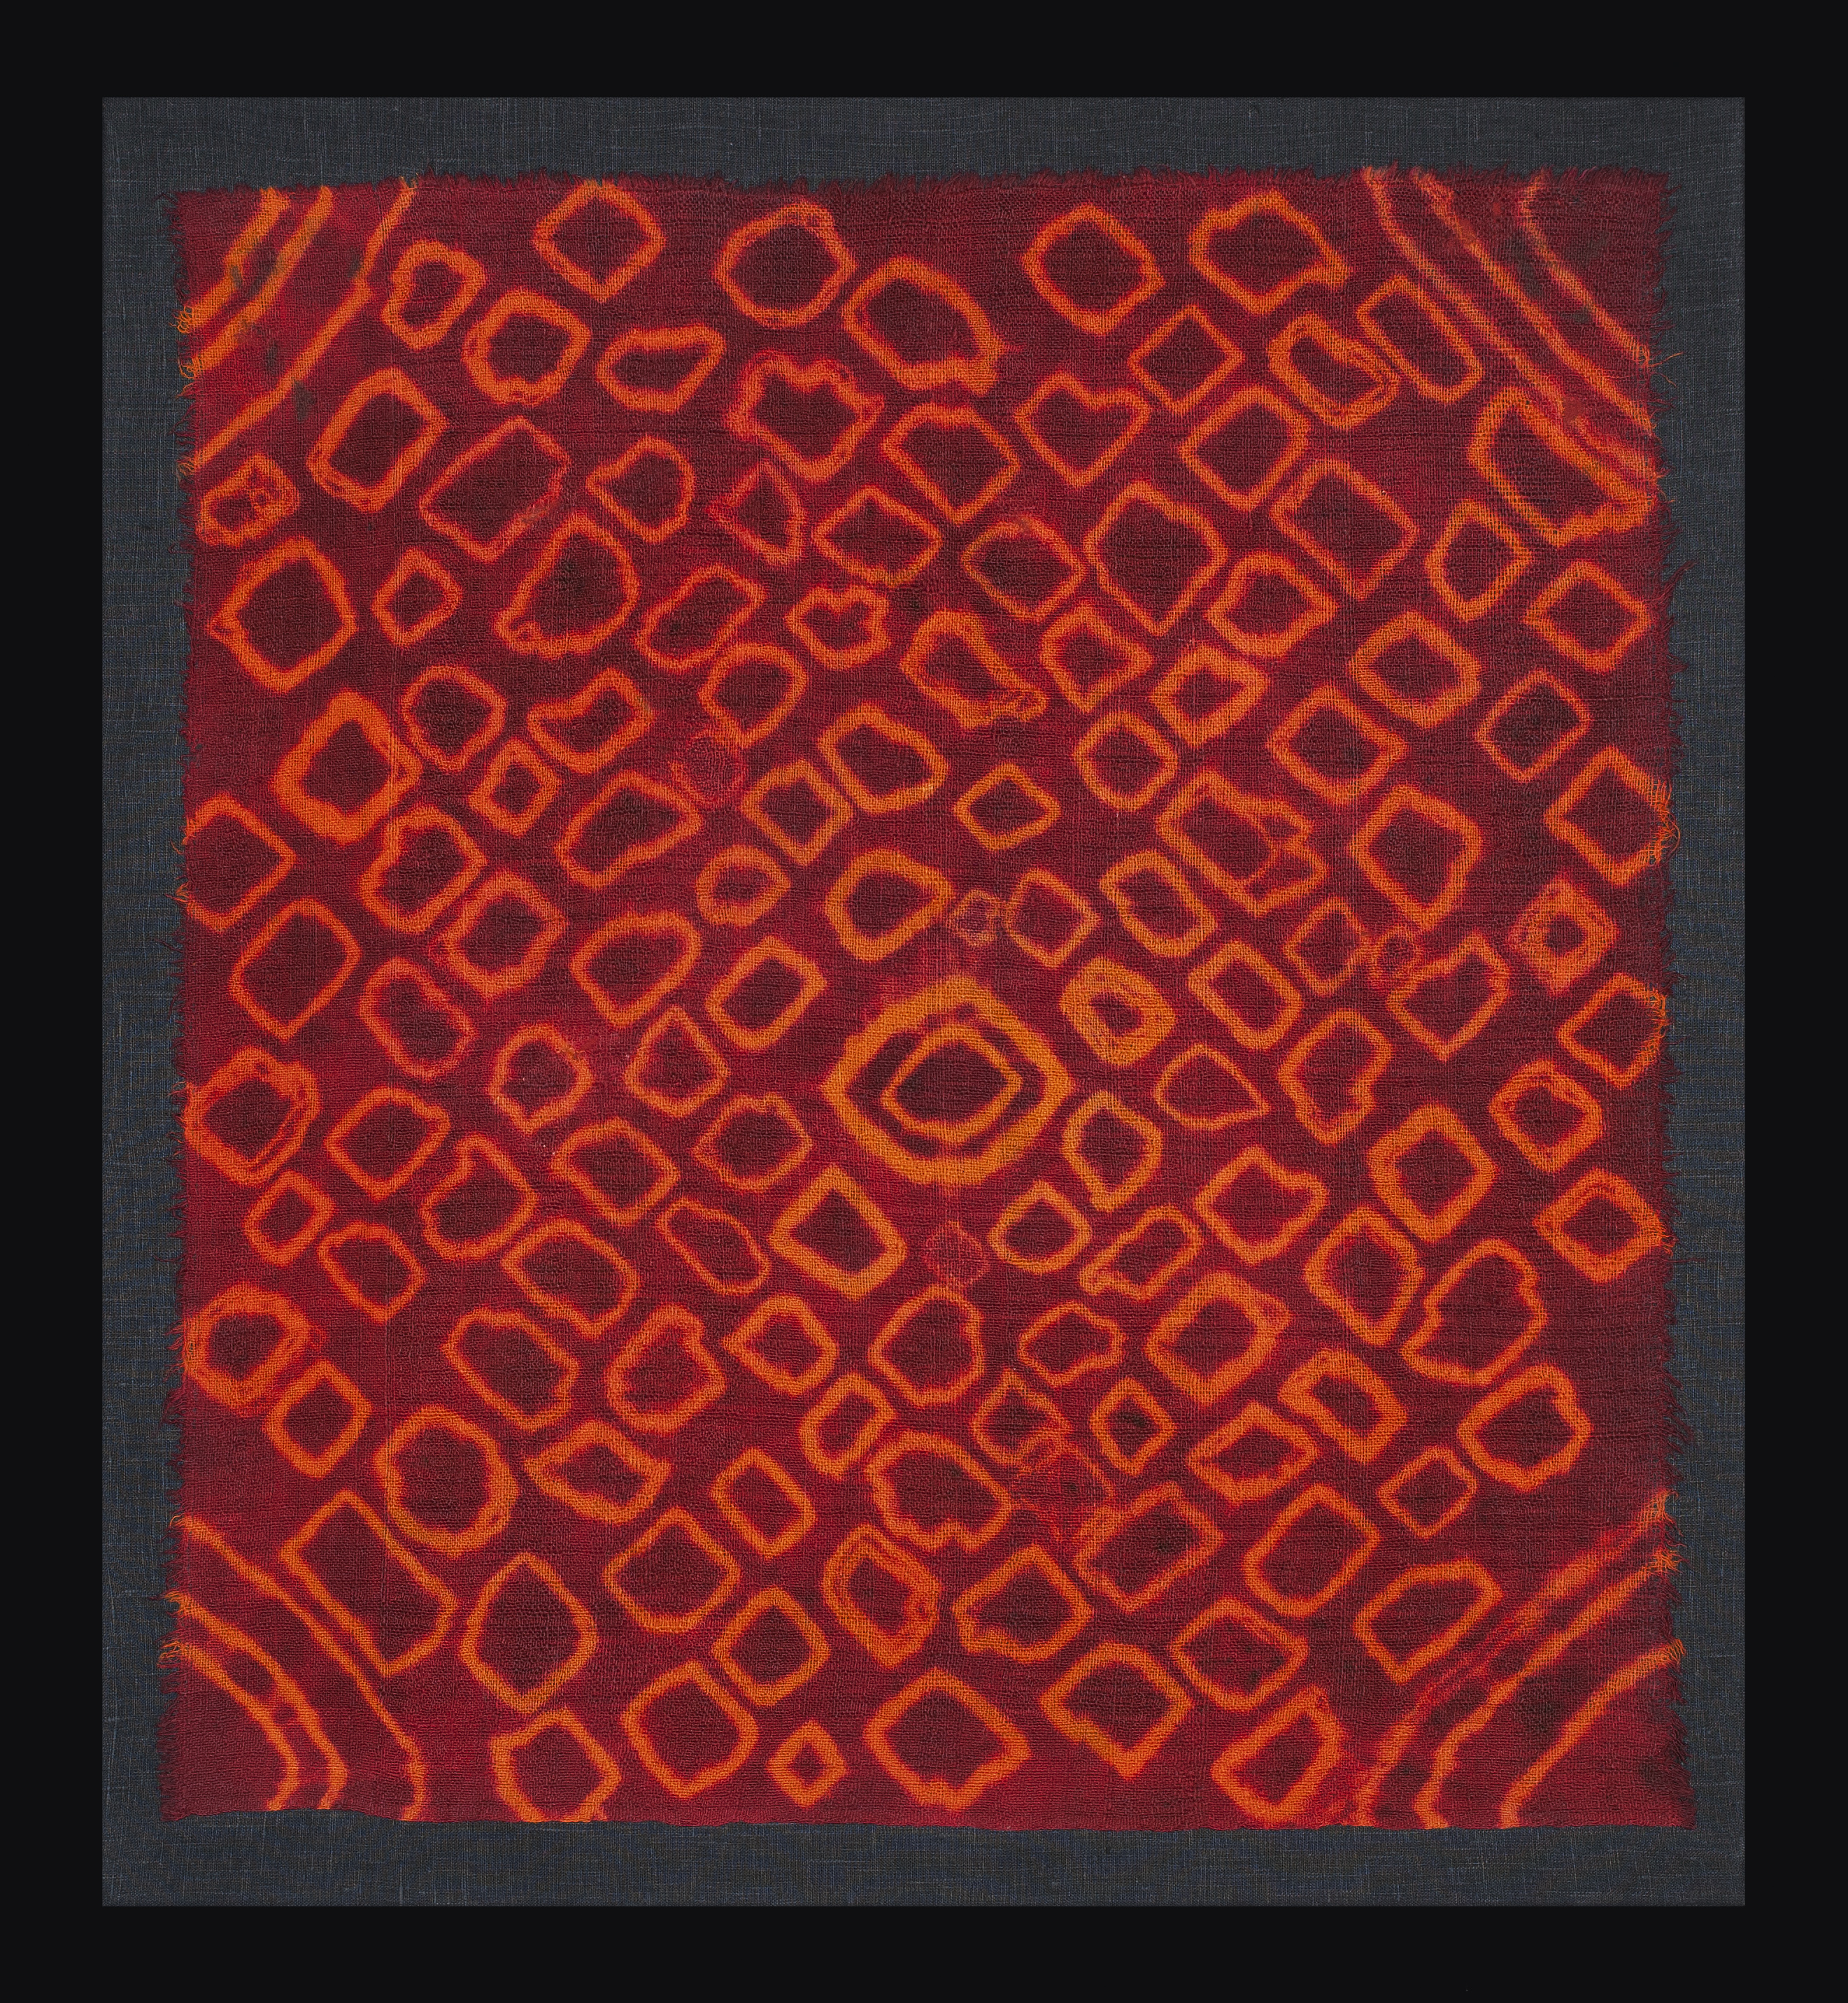 Woman's ceremonial head scarf, aganoun, Ait Haddidou tribe, High Atlas, Morocco, 1st half 20th century. Resist-dyed wool, 79 x74cm, mounted, Clive Loveless, London